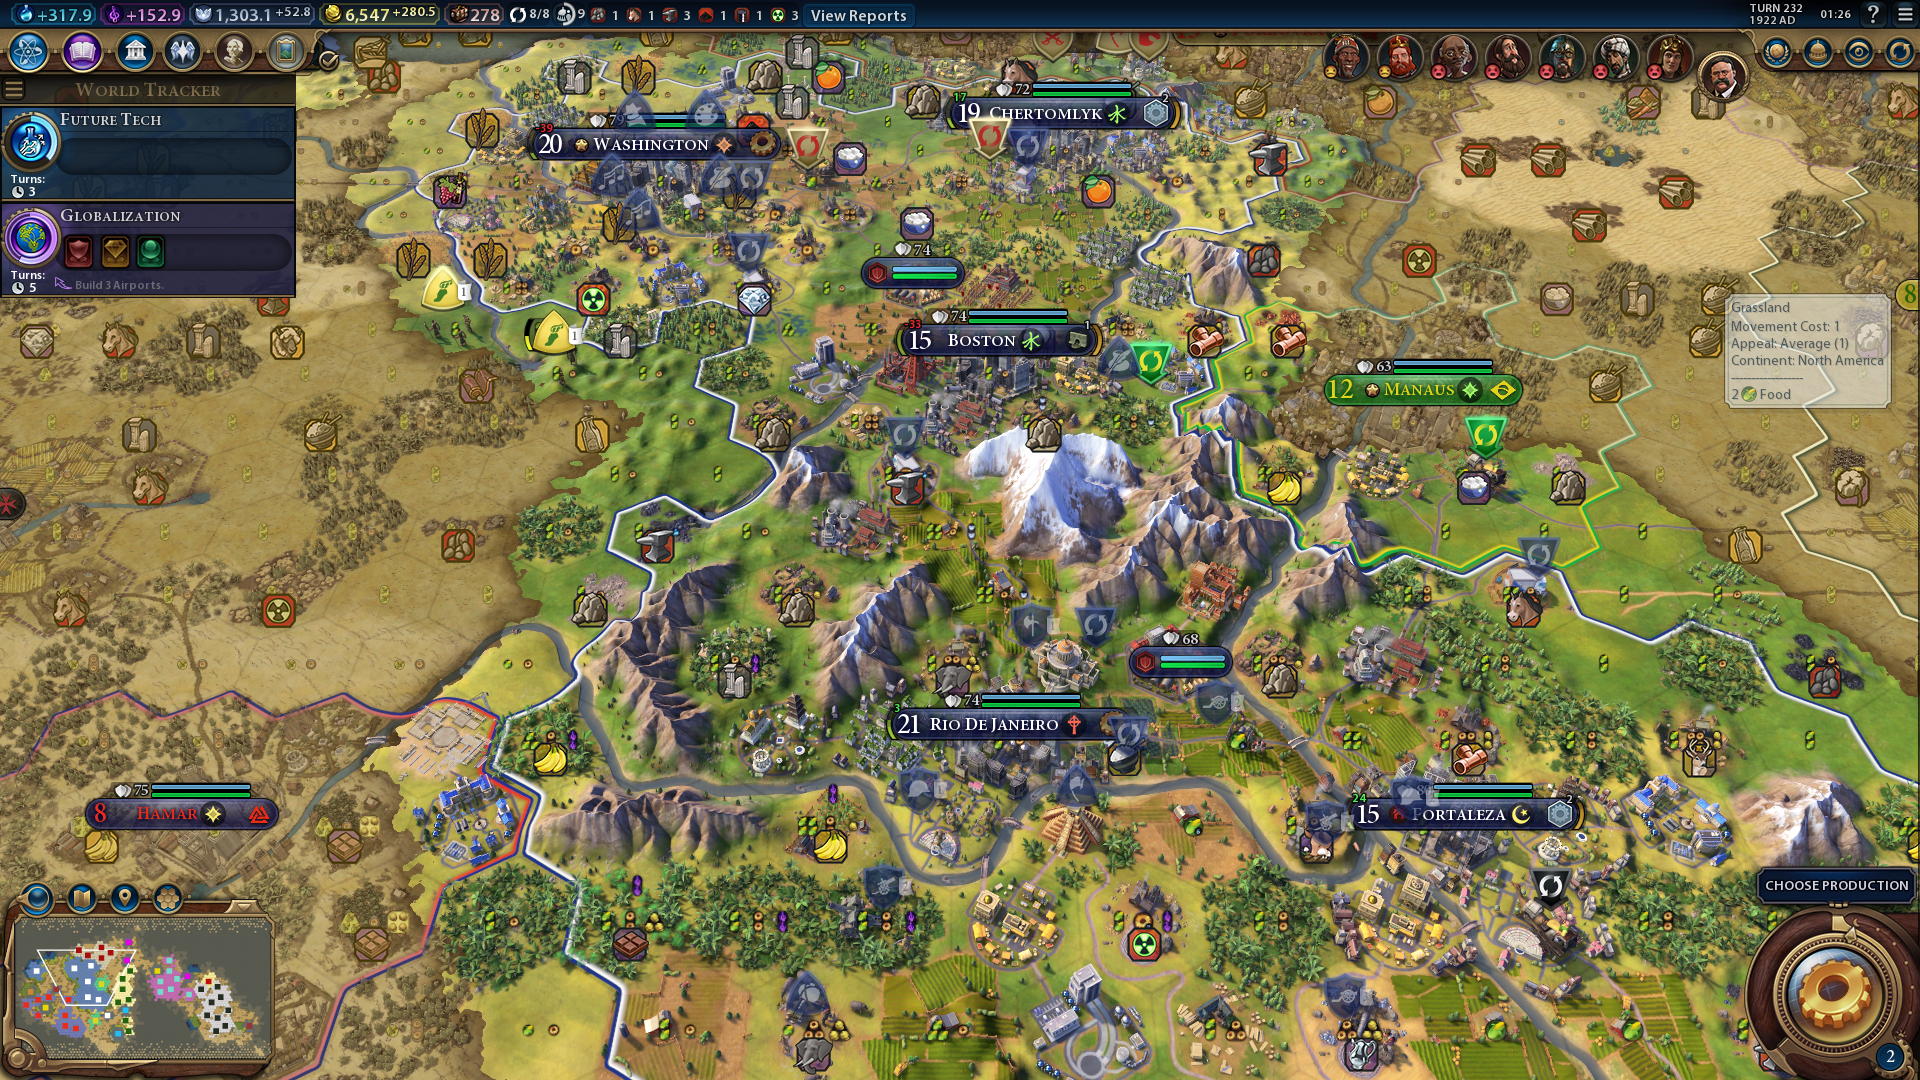 IMAGE(http://www.shadout.dk/games/civ6/civgame2-3.png)